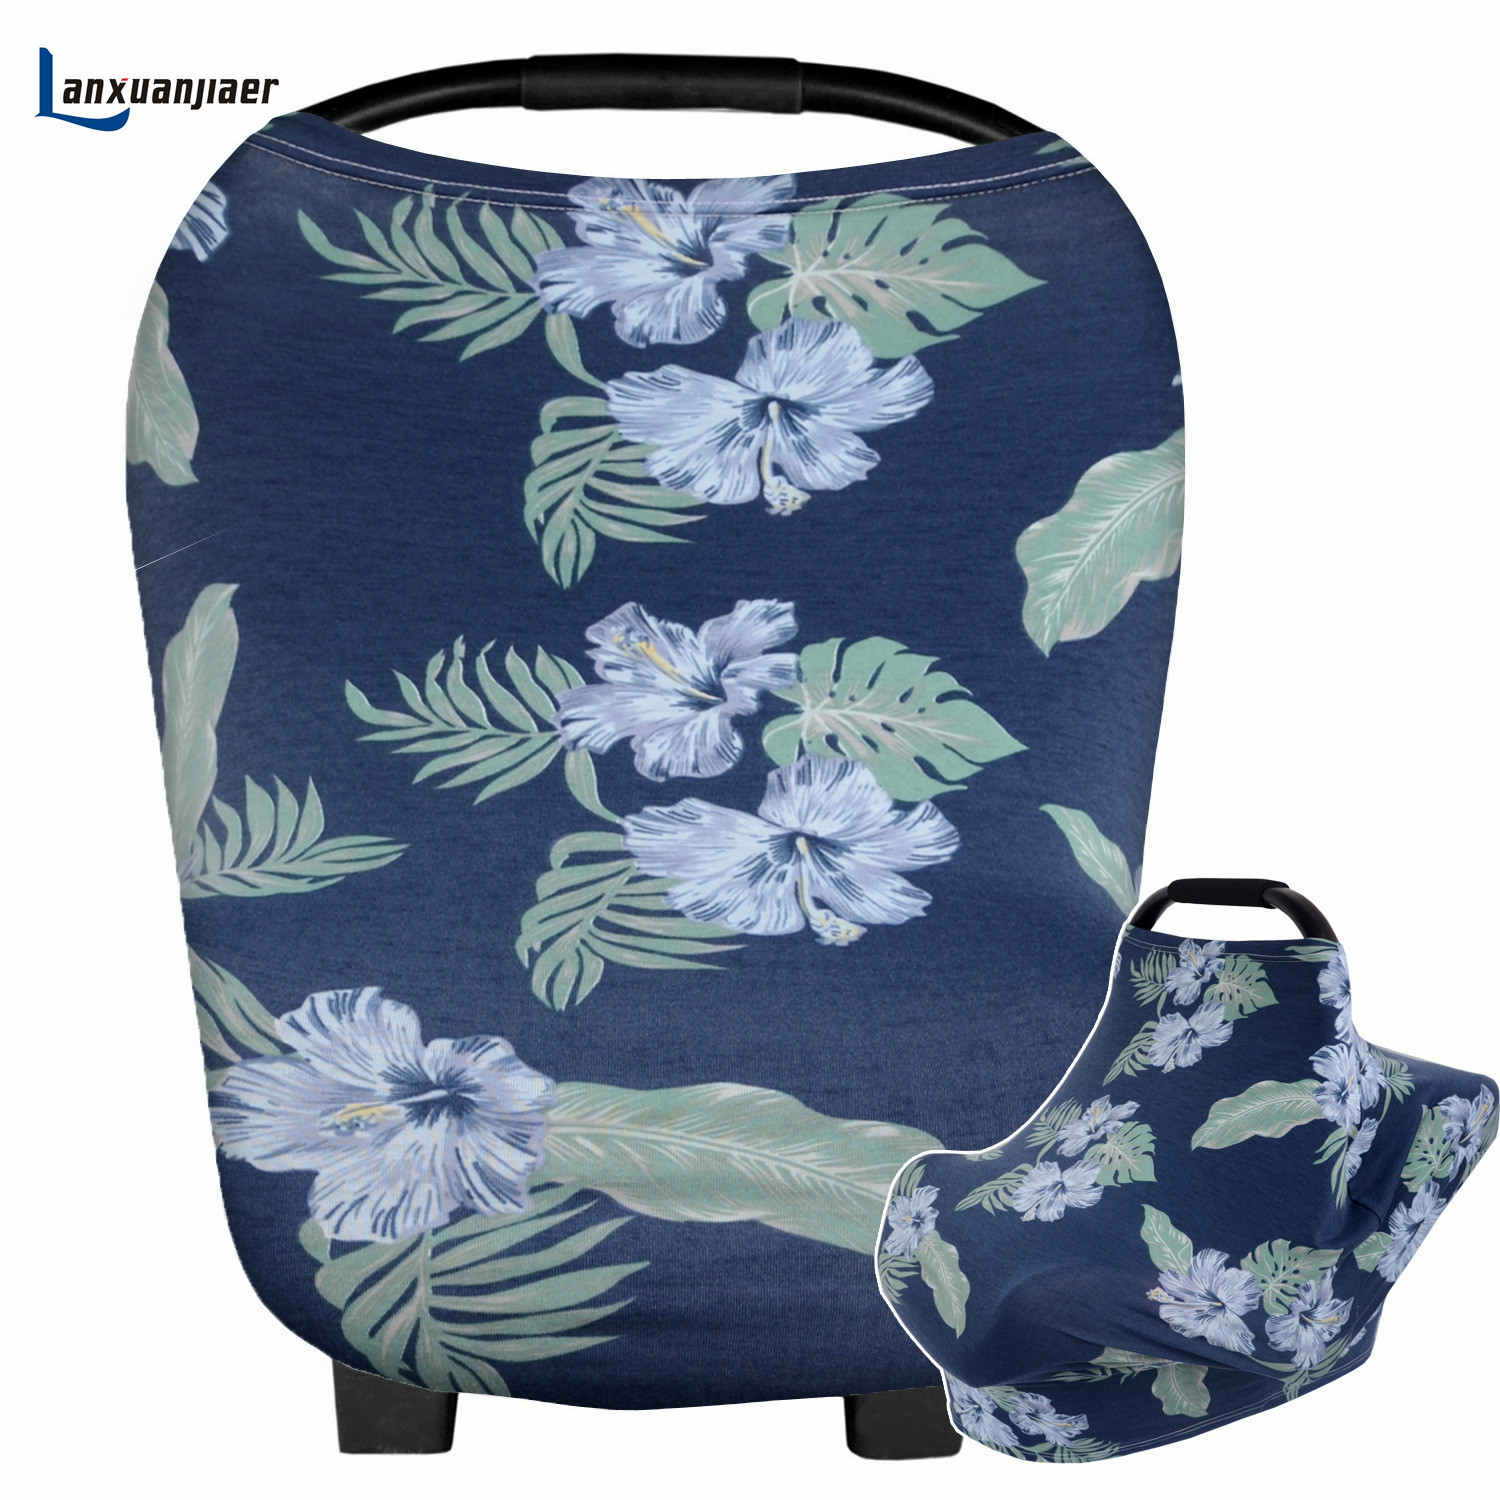 Lanxuanjiaer Multi-Use nursing Cover Stretchy Baby Shower Gift for mum mother Nursing Breastfeeding Scarf Car Baby Seat Cover